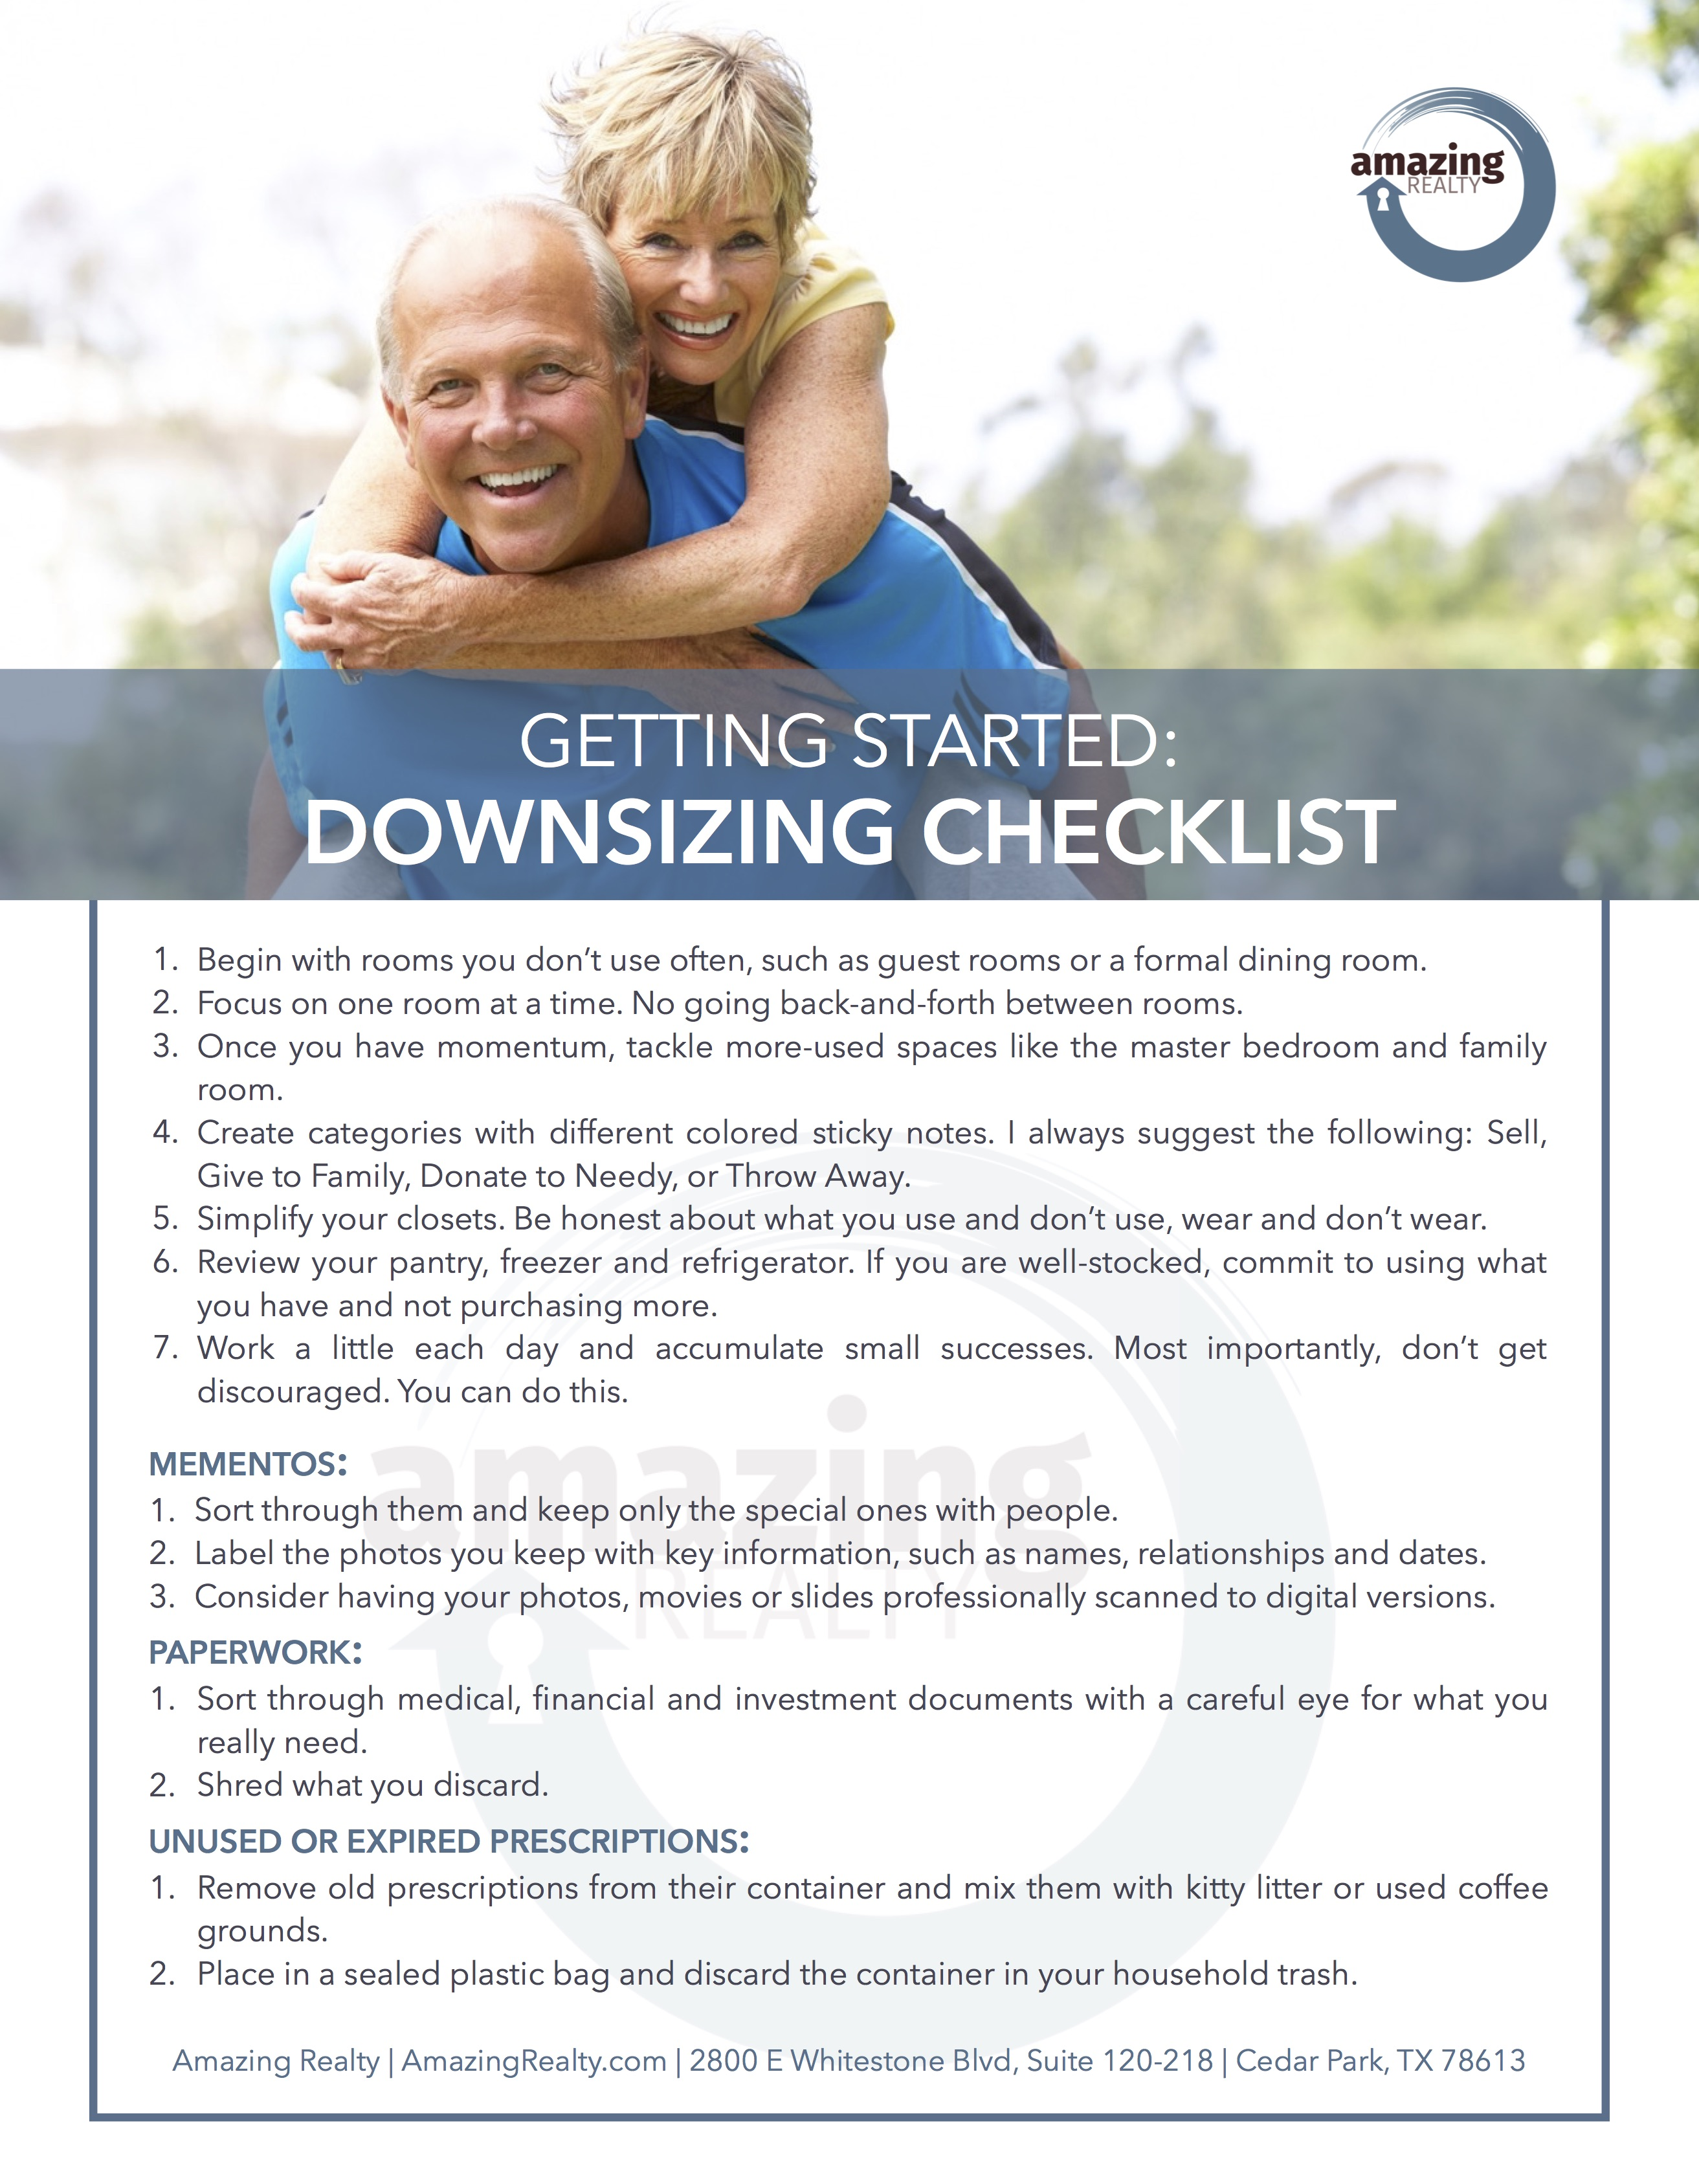 Downsizing Checklist - Amazing Realty by Agent Operations